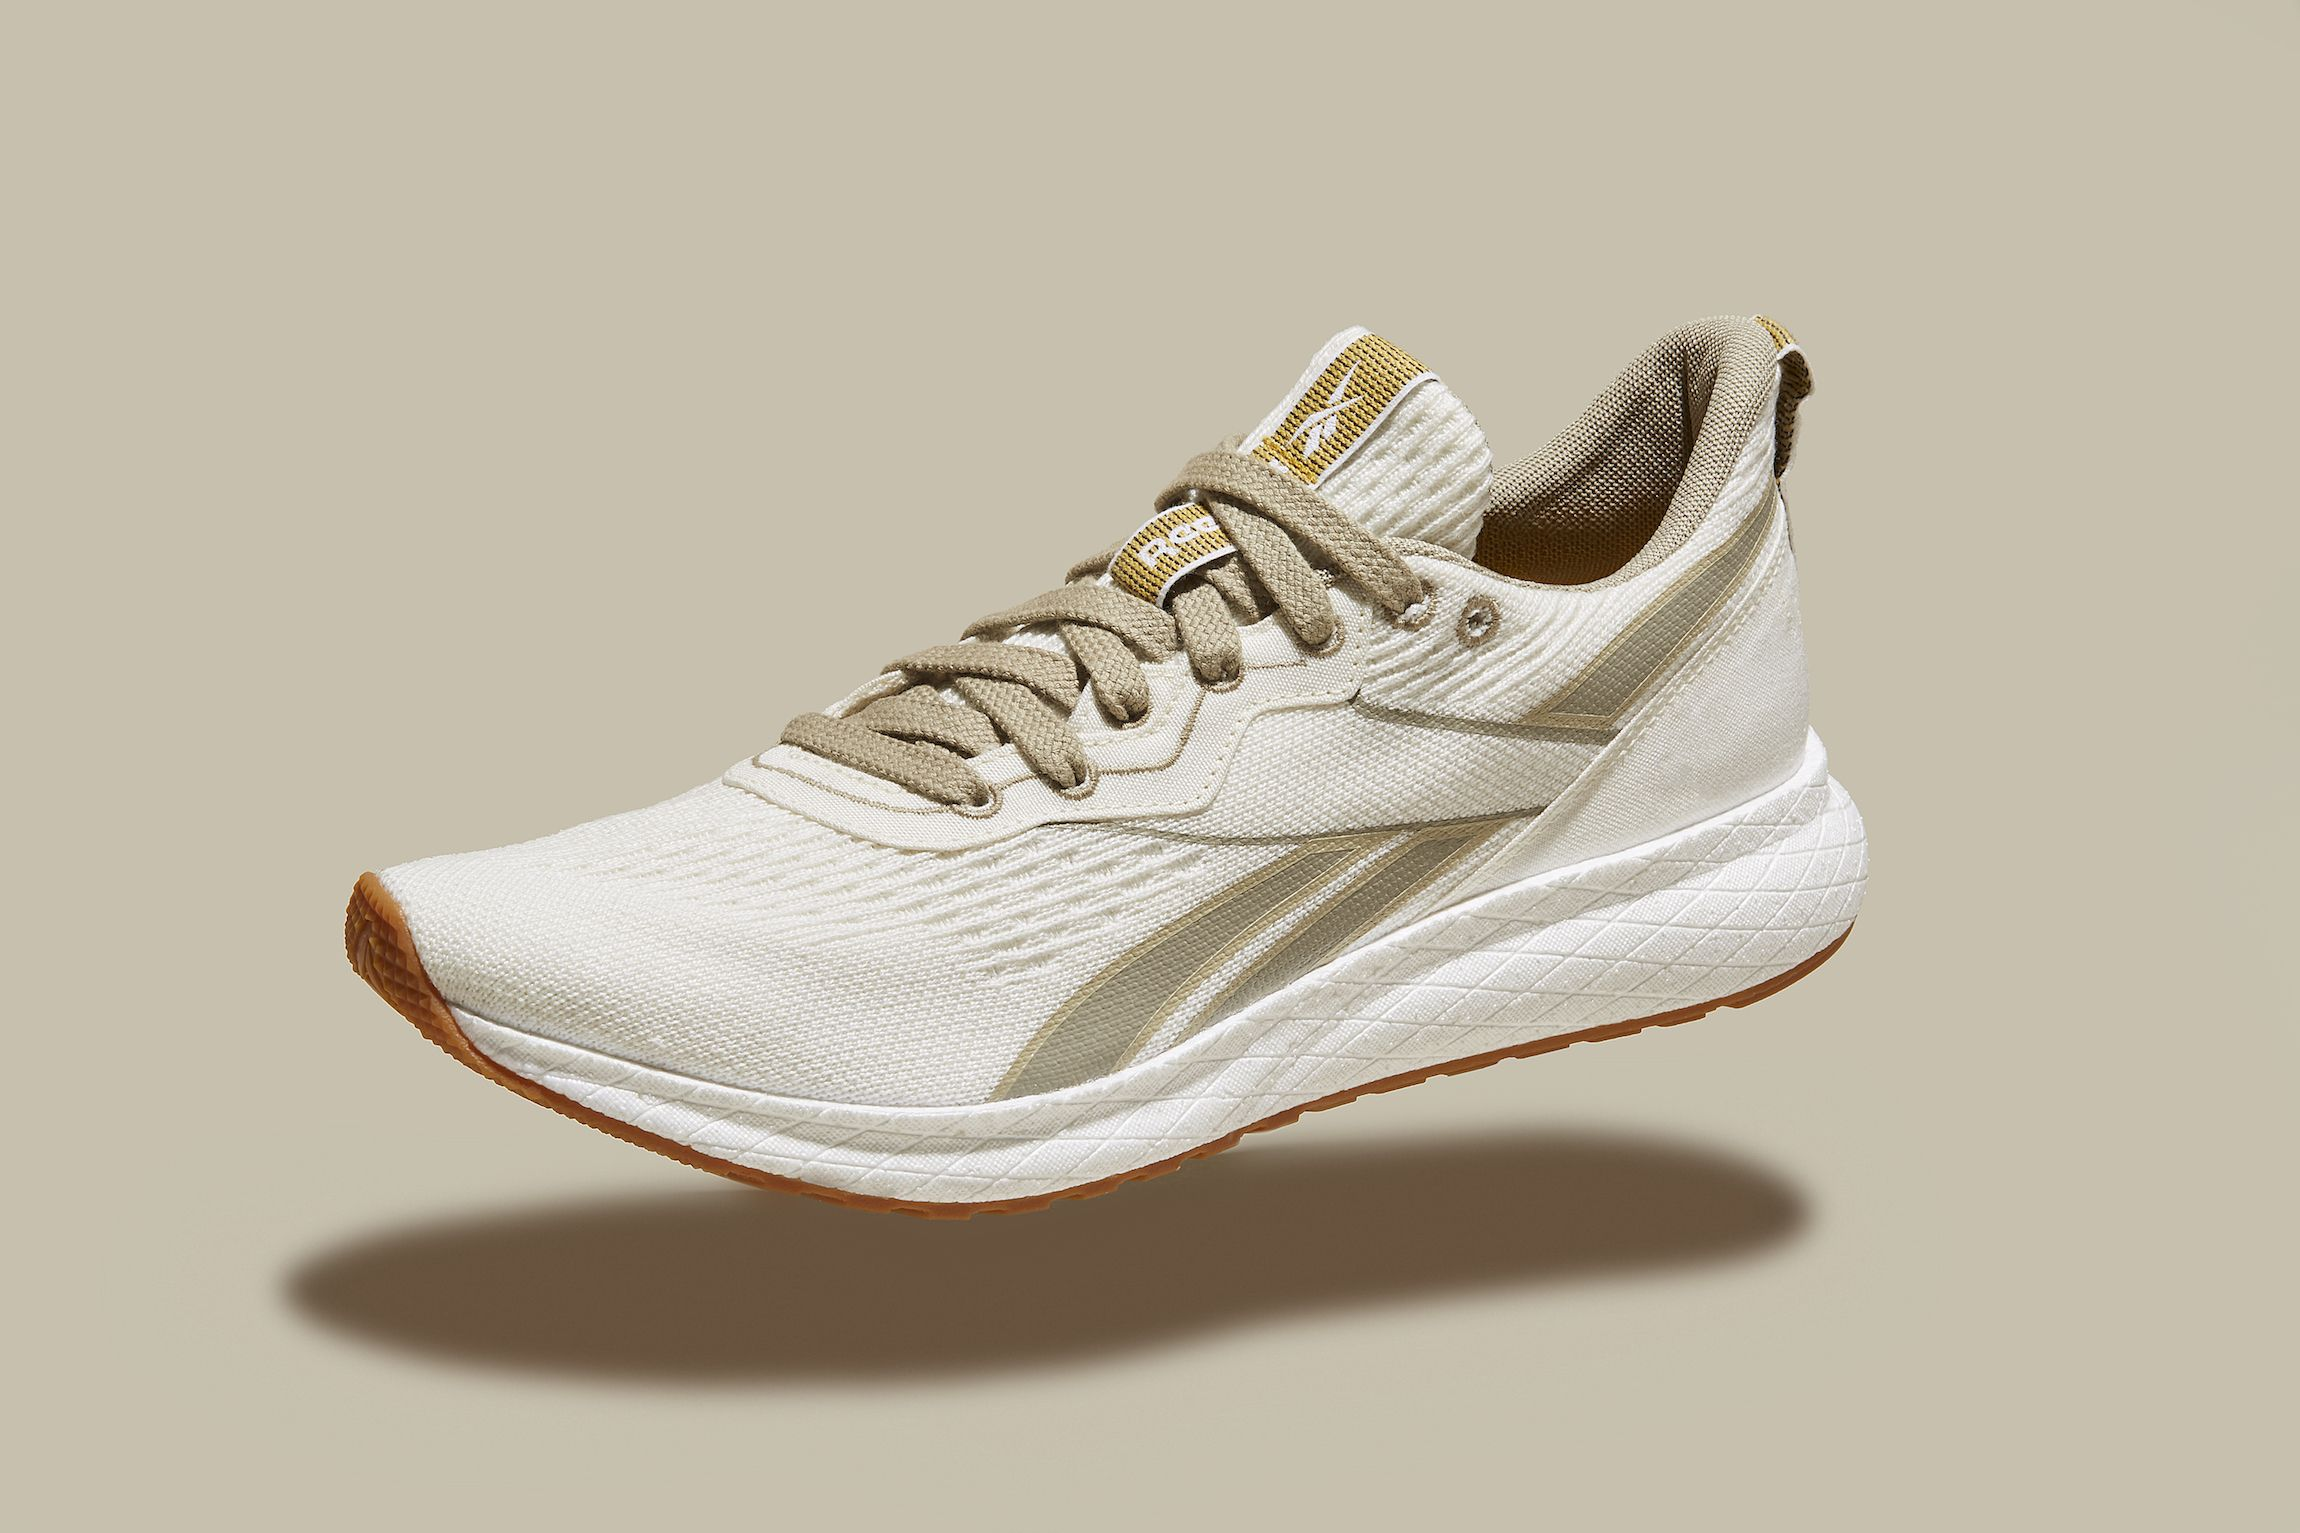 the new reebok shoes